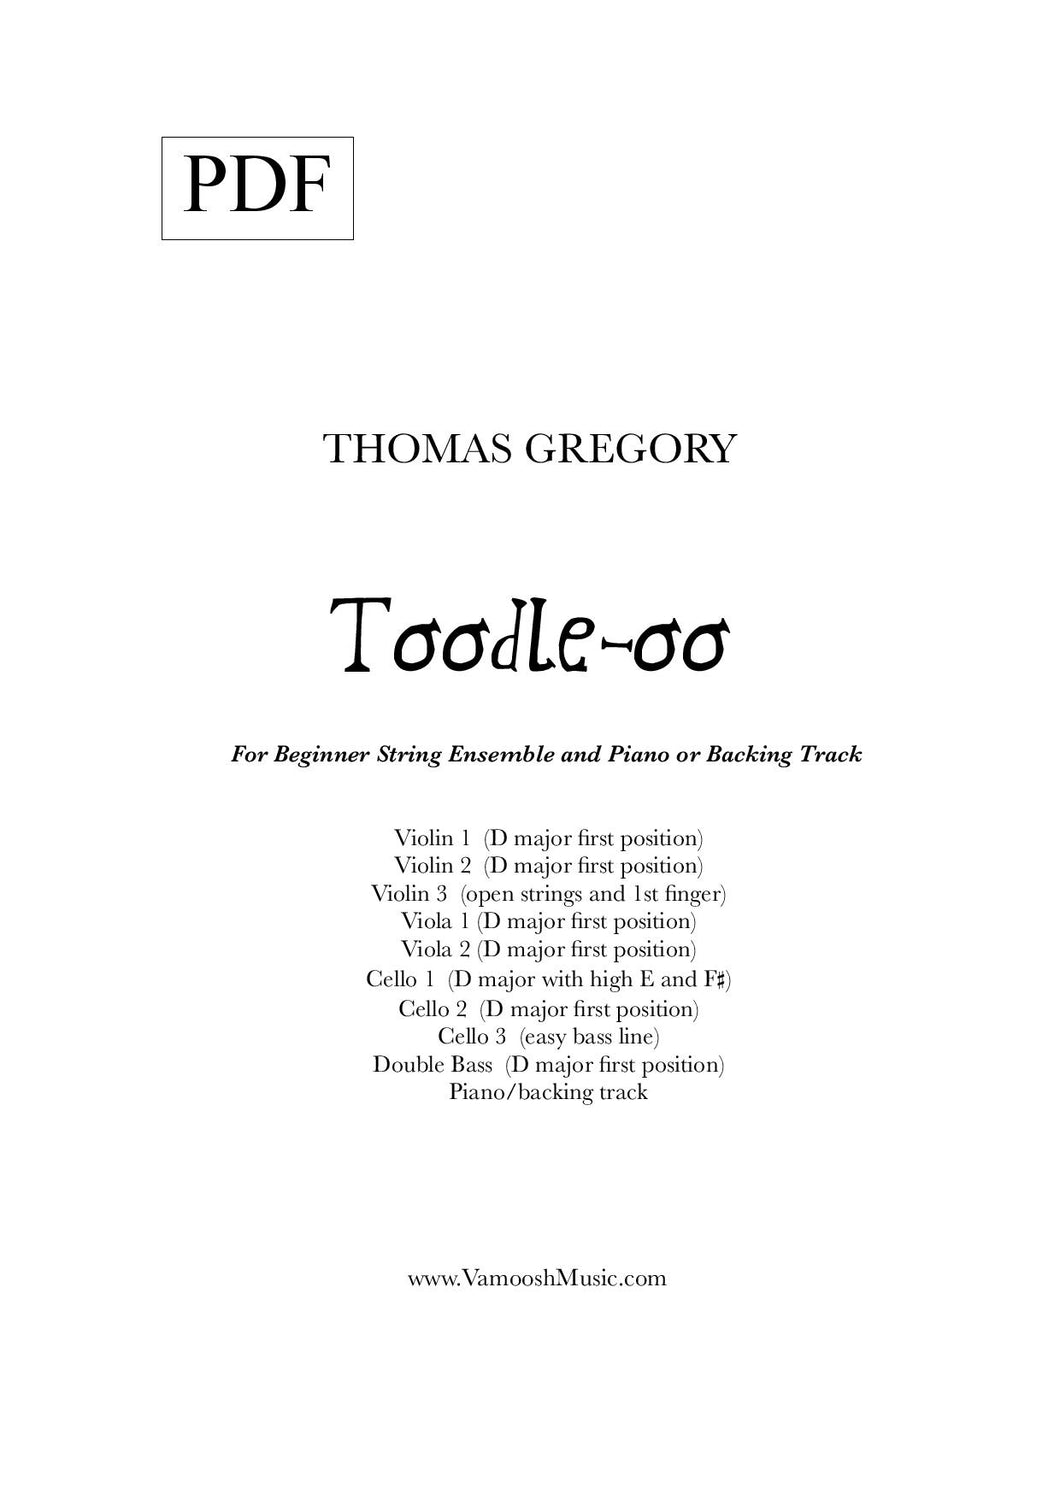 Toodle-oo (PDF) by Thomas Gregory